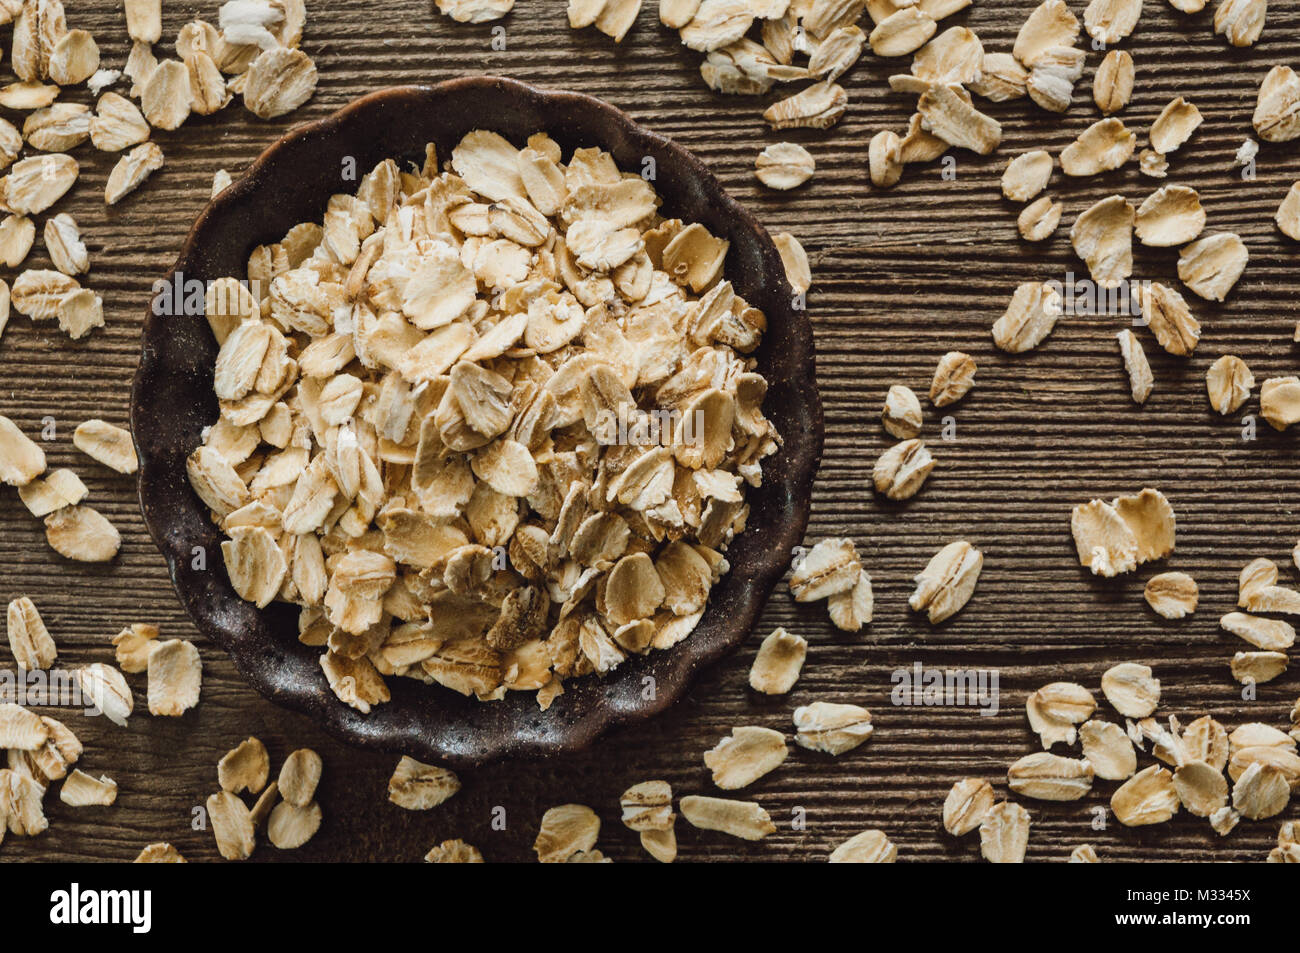 Ceramic Bowl of Rolled Oats on Rustic Wooden Table - Stock Image